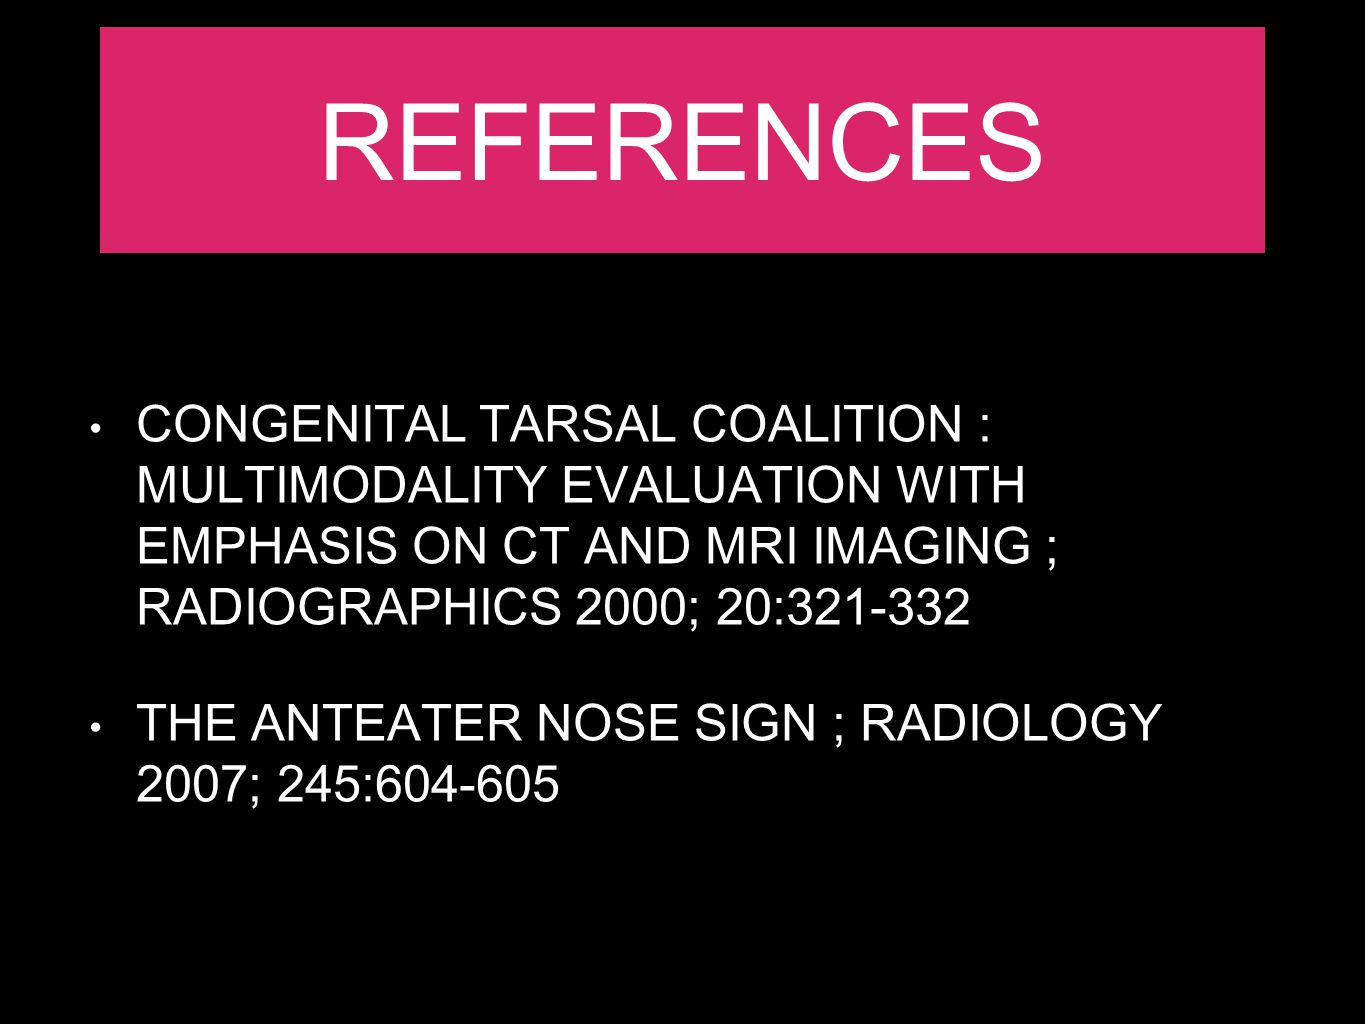 REFERENCES CONGENITAL TARSAL COALITION : MULTIMODALITY EVALUATION WITH EMPHASIS ON CT AND MRI IMAGING ; RADIOGRAPHICS 2000; 20:321-332.